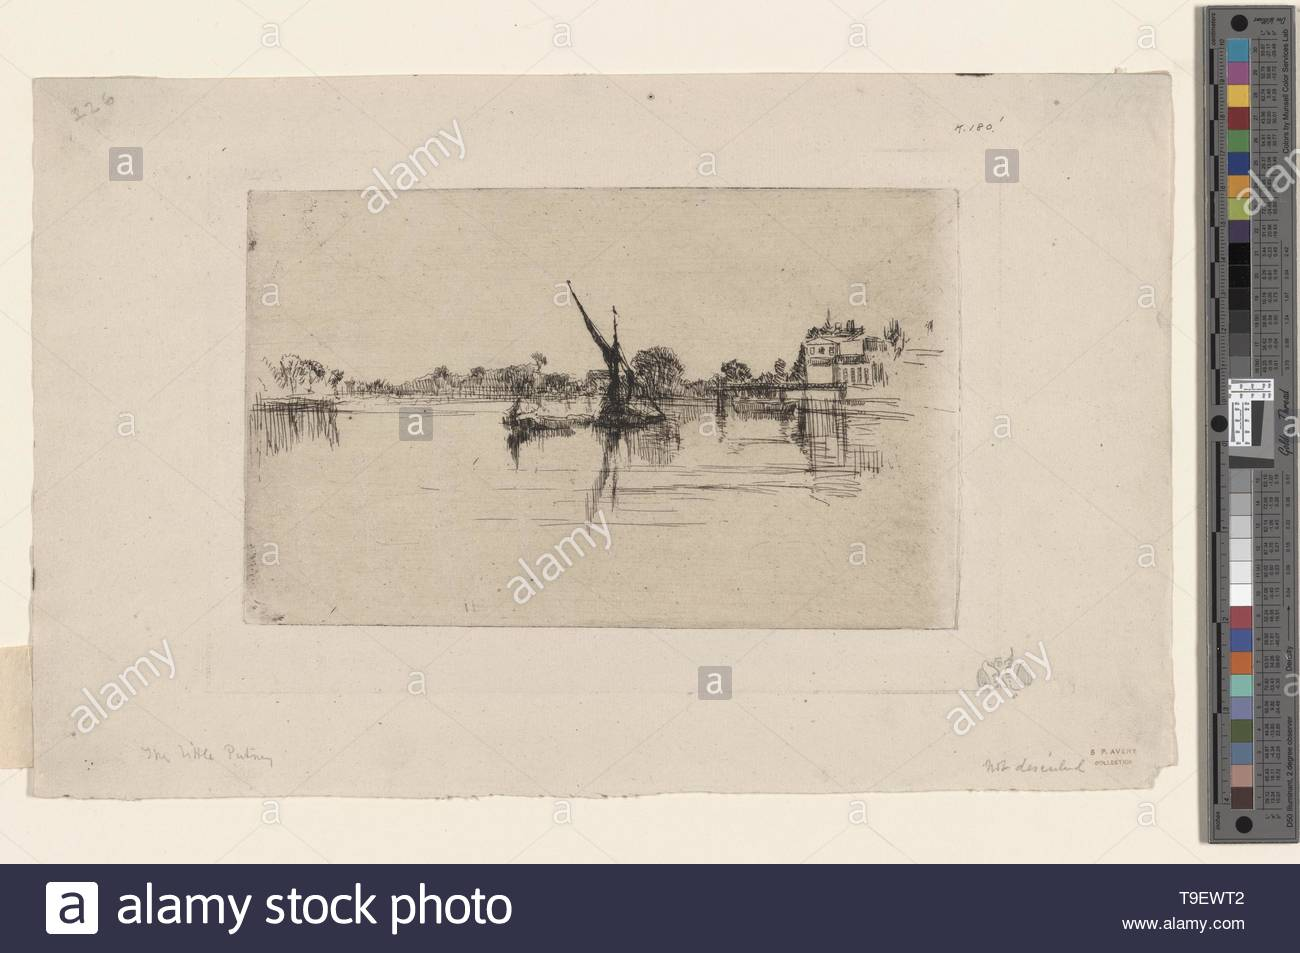 Whistler,JamesMcNeill(1834-1903)-The Little Putney, no  2 - Stock Image